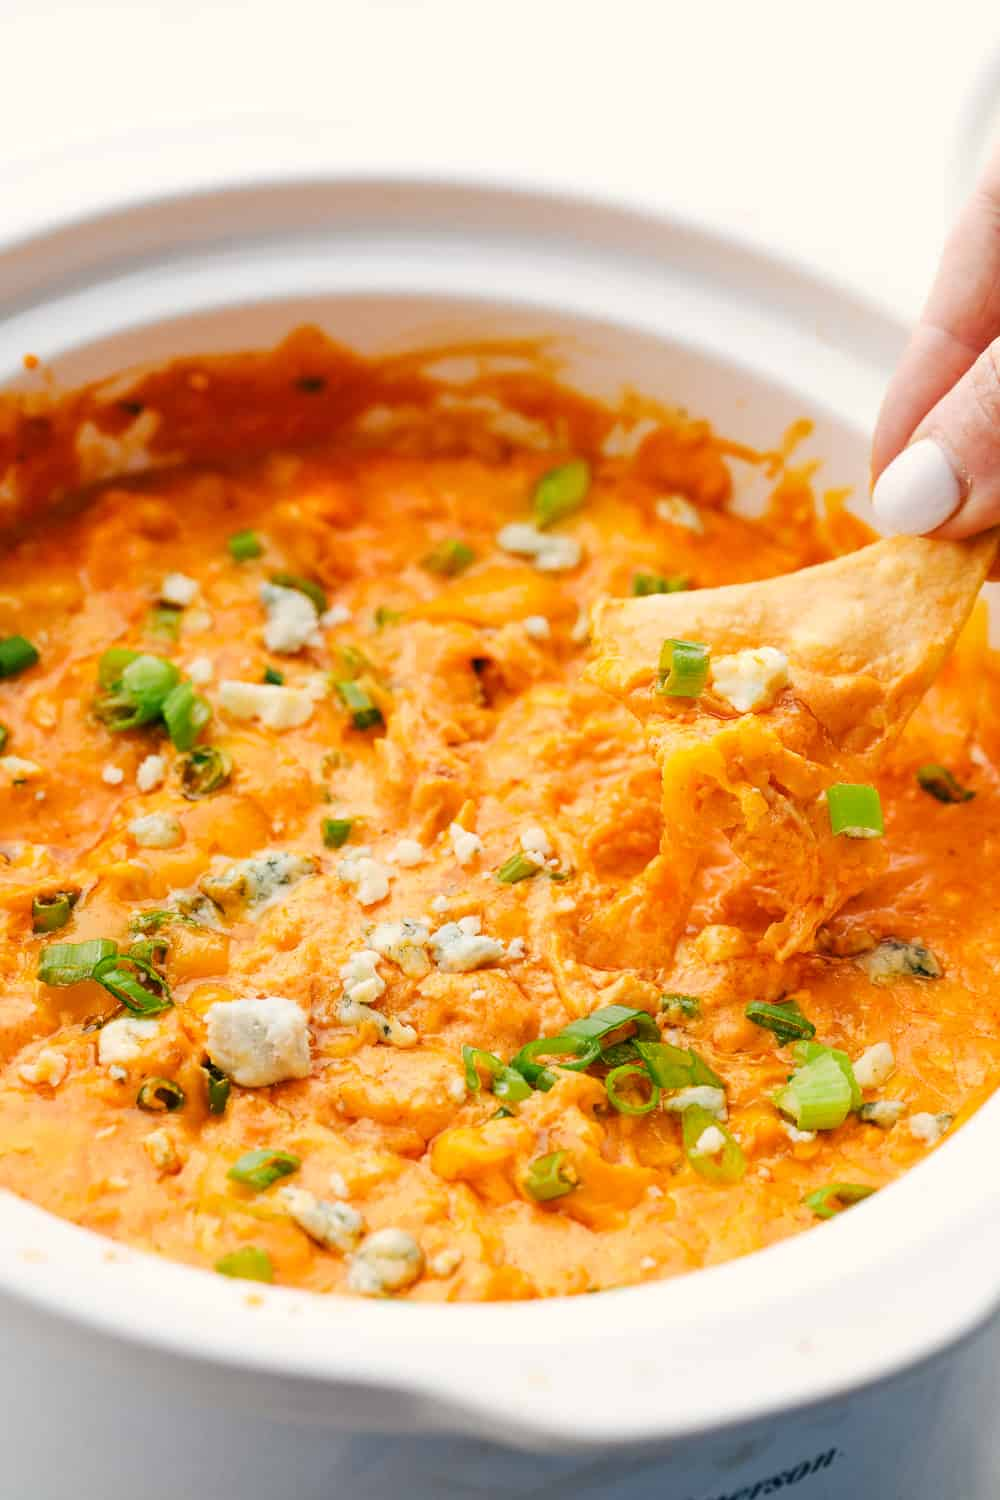 Dipping a chip into Buffalo chicken dip.